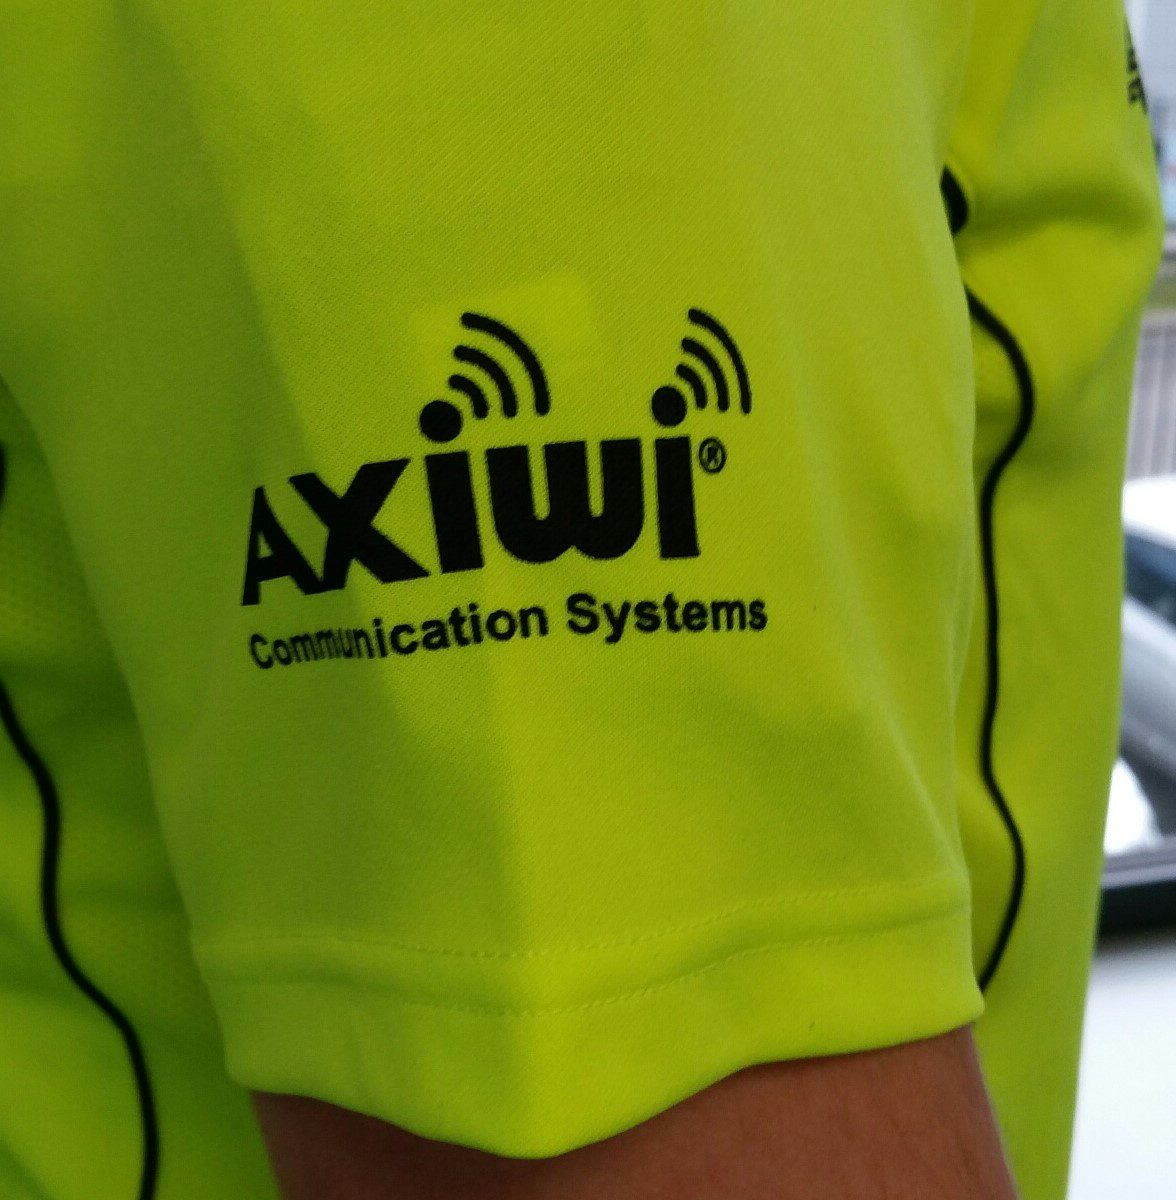 axiwi-arm-belt-under-shirt